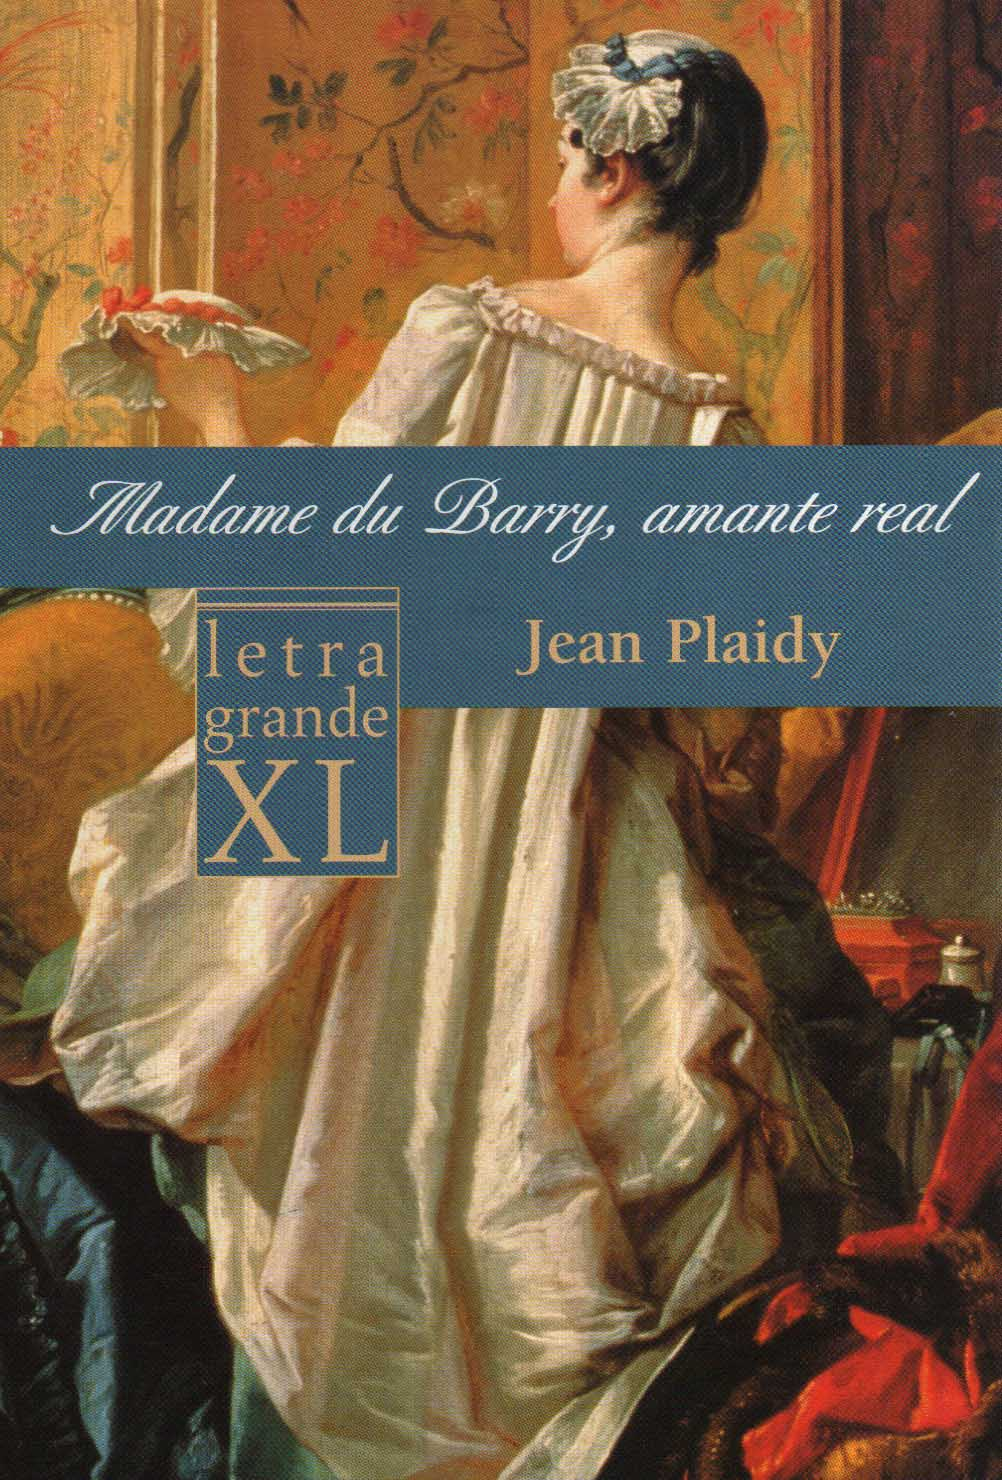 Madame du Barry, amante real